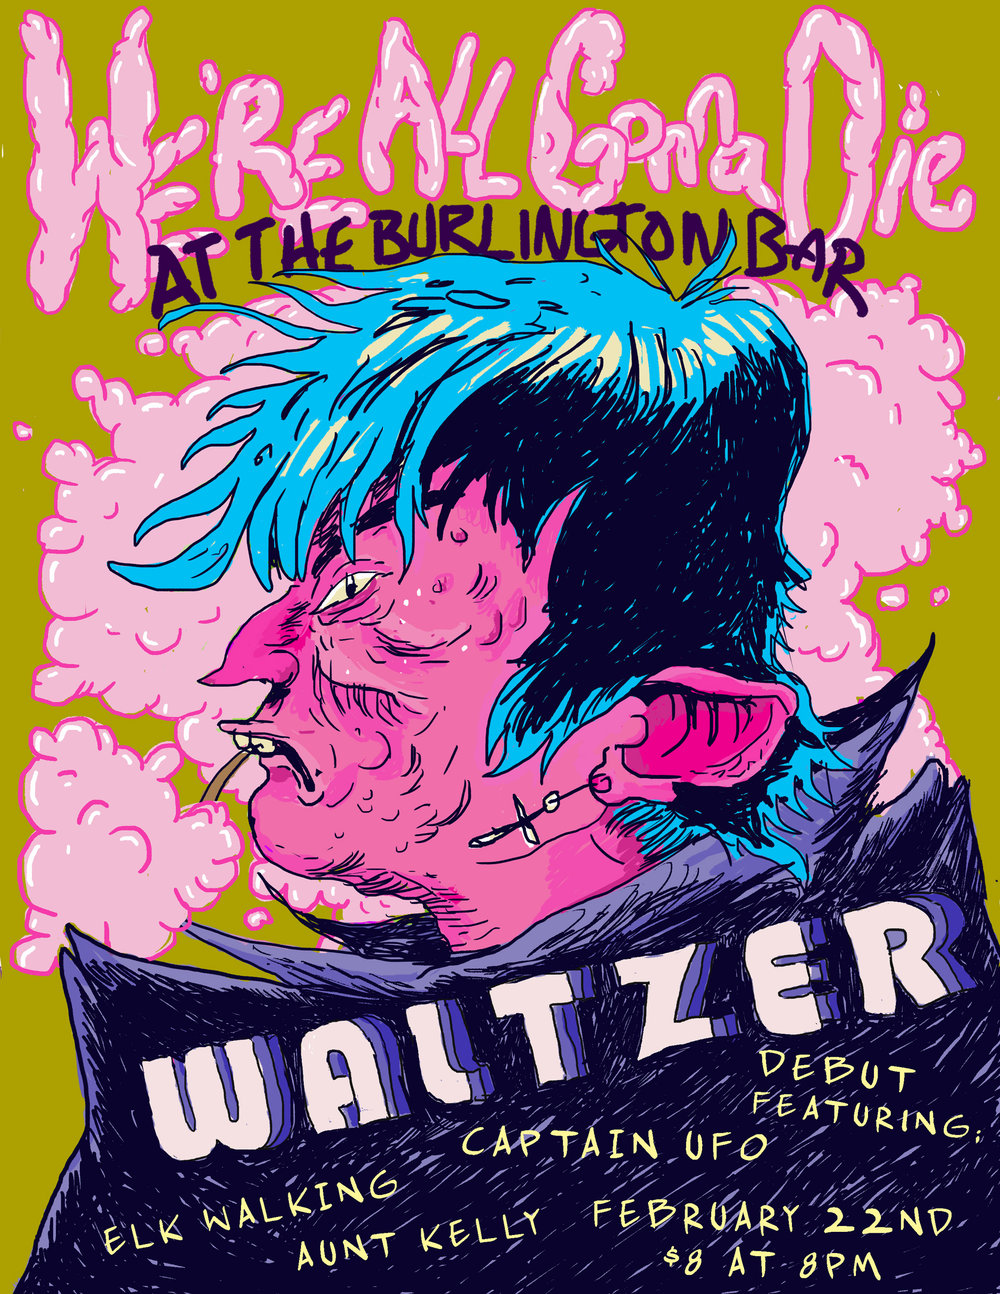 Flyer for Waltzer's Chicago Debut Show